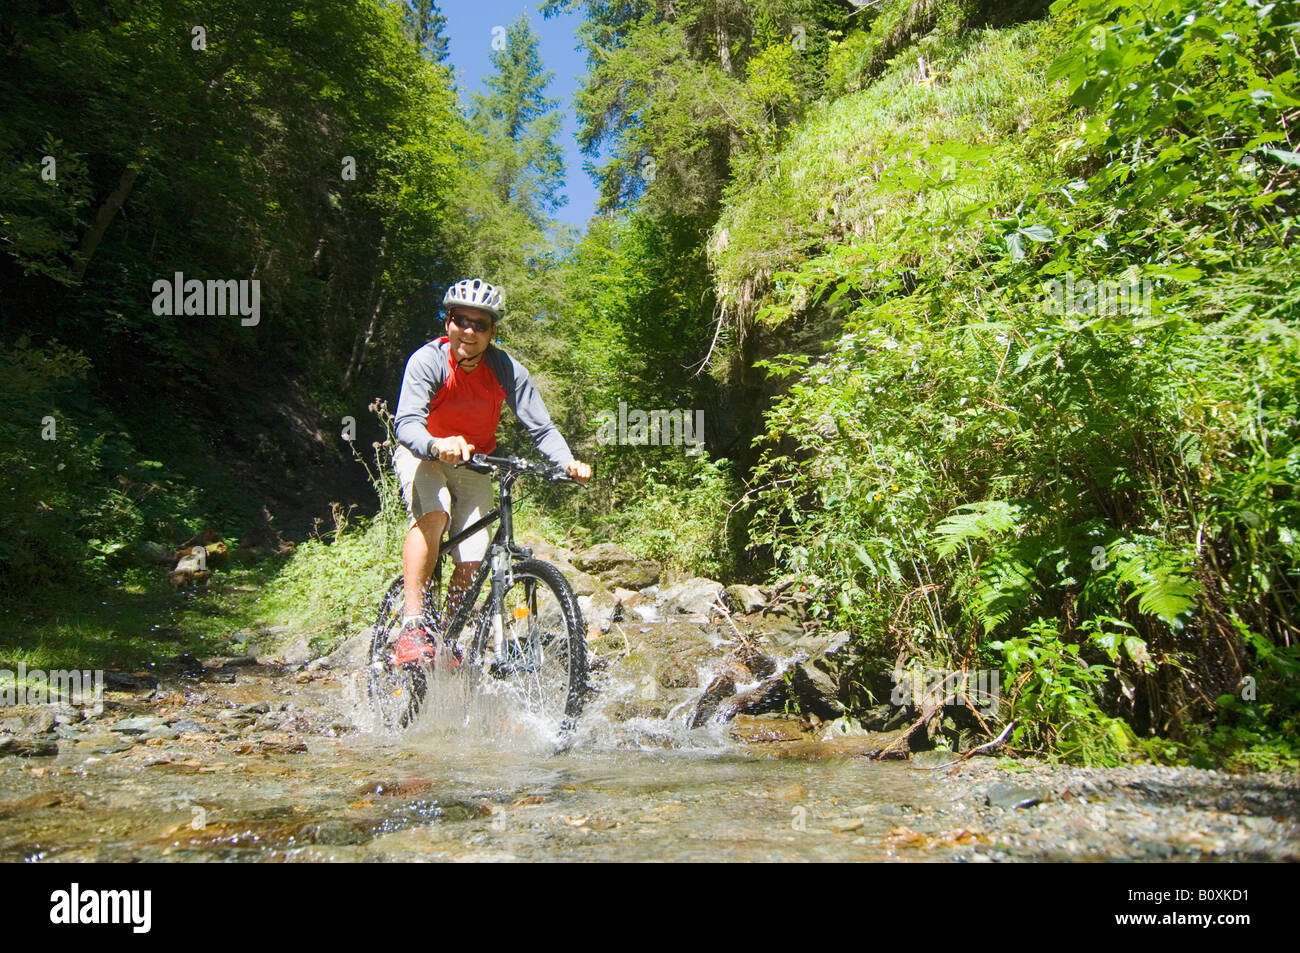 Mountainbiker crossing brook - Stock Image